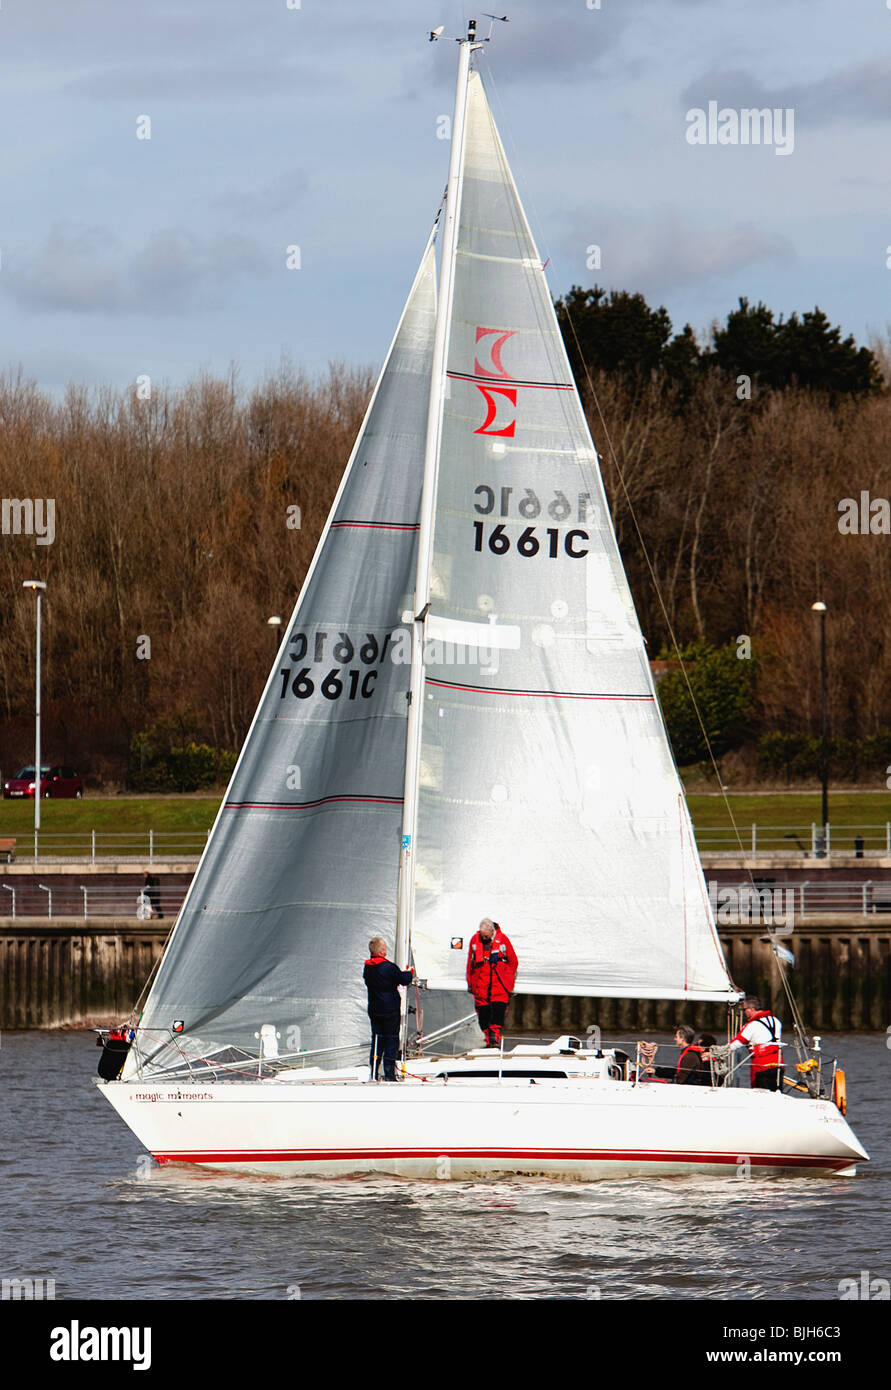 Sailing Yacht Sigma 33 River Mersey Yacht Race Liverpool Yacht Club Race for Sports relief - Stock Image